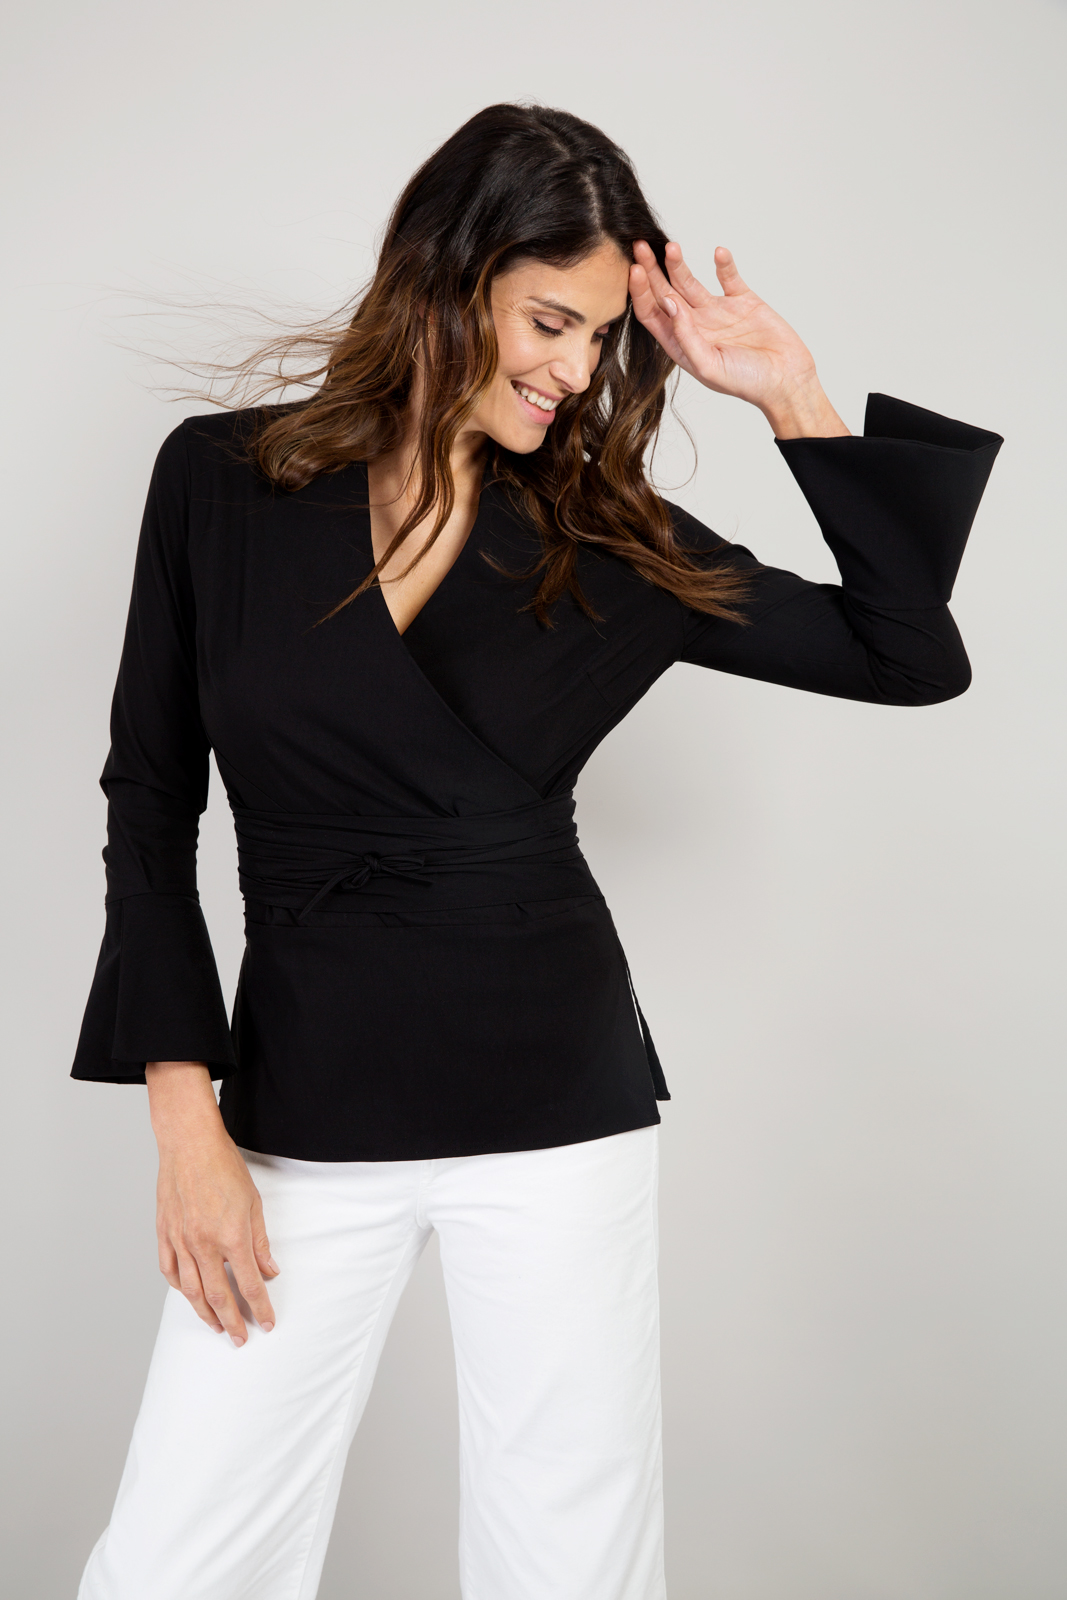 Alice Fawke - shirt for a bigger bust - Tina wrap shirt - black